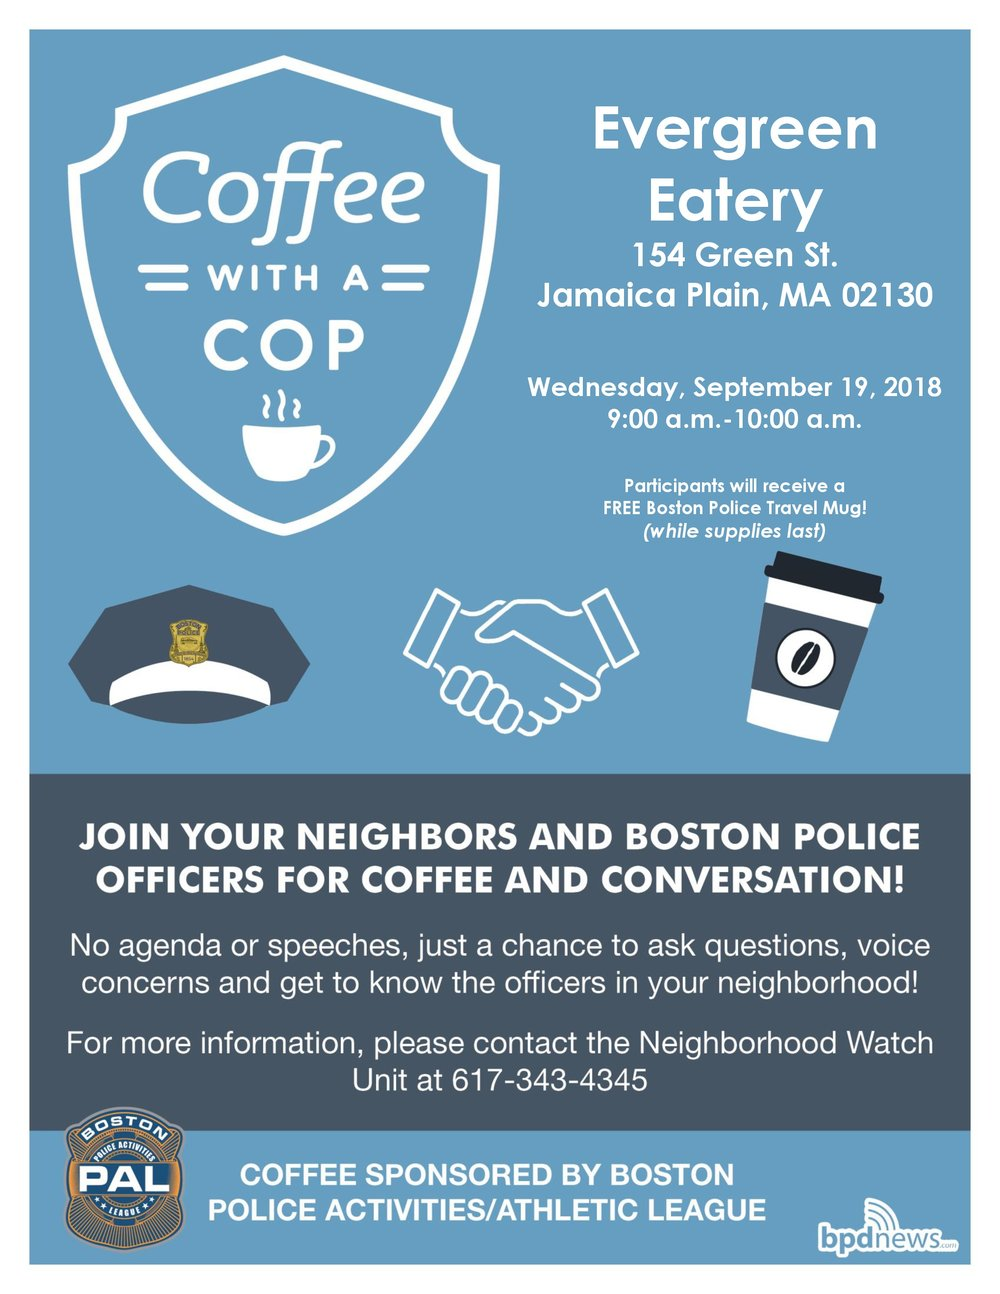 Coffee with a Cop Coming to Evergreen Eatery in Jamaica Plain!